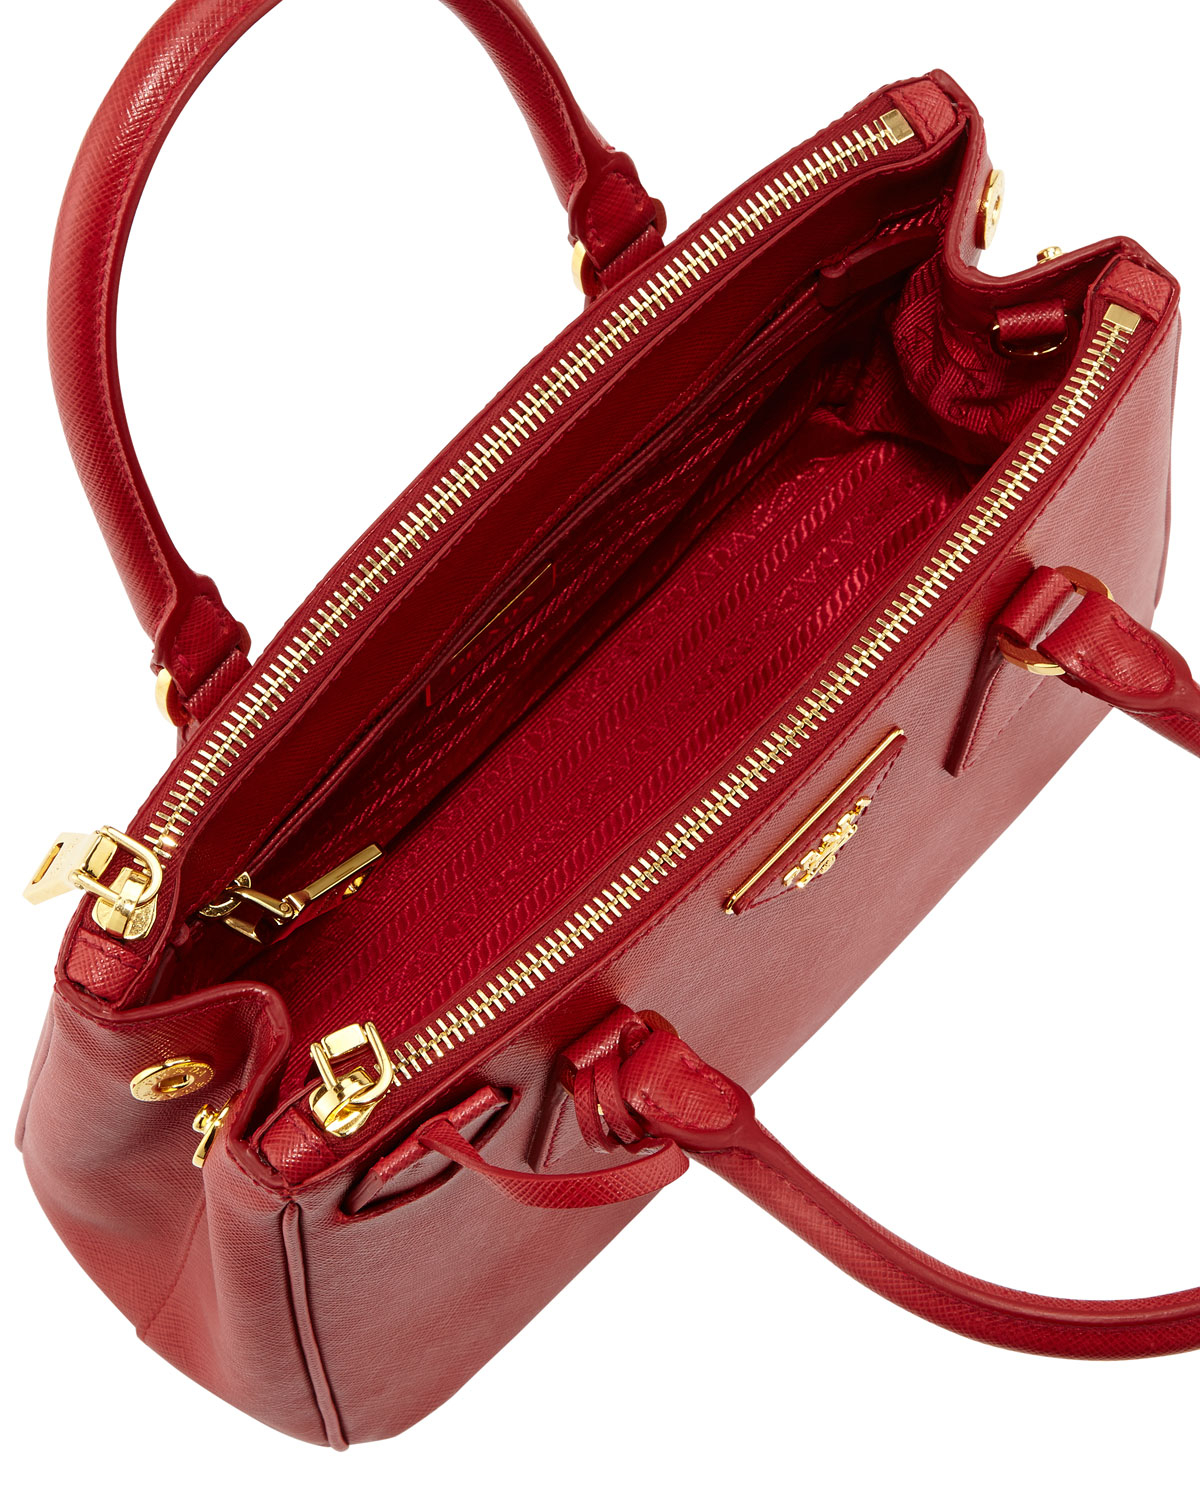 Prada Saffiano Baby Executive Tote Bag With Strap in Red | Lyst